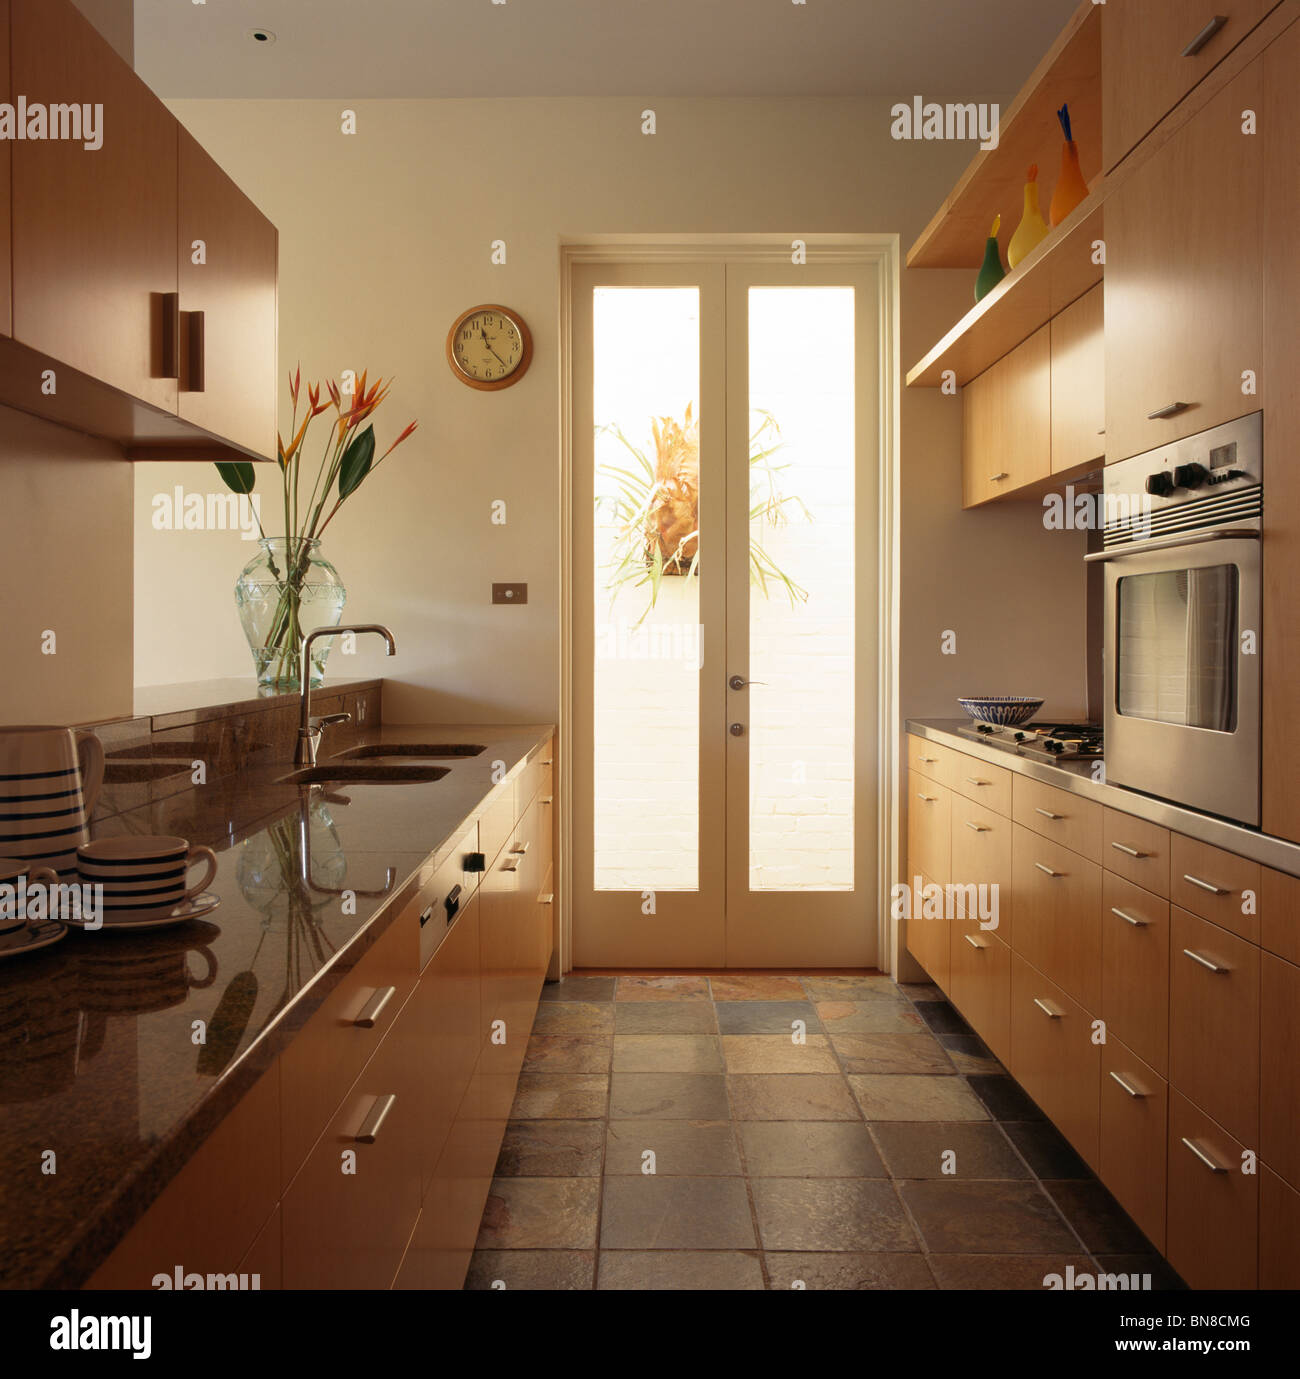 Slate floor tiles and glass double doors in galley kitchen with pale ...